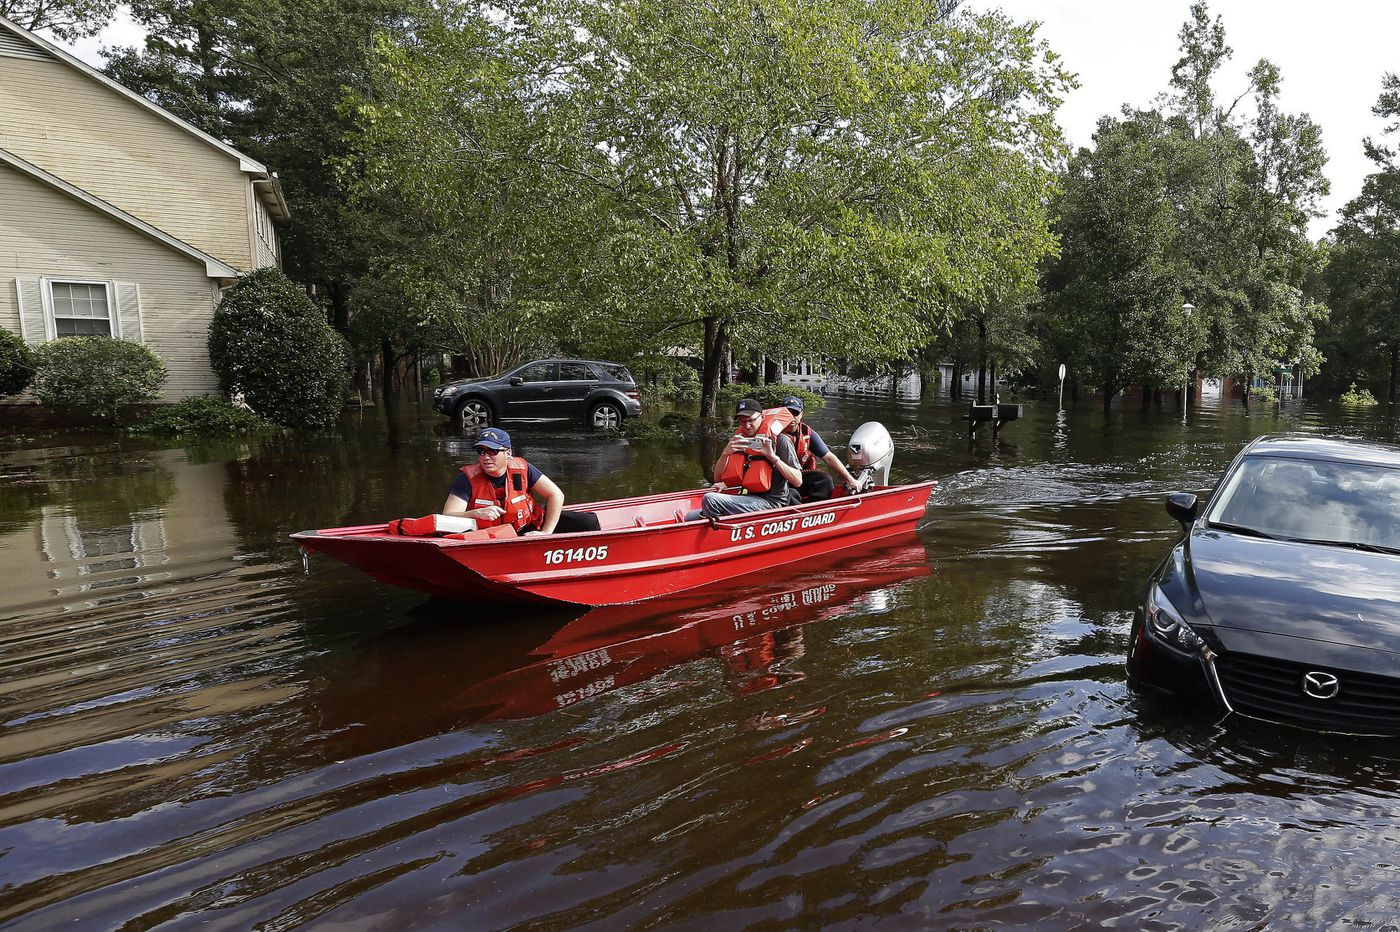 Hurricane Florence spared Philly region, but what about the next storm? | Editorial